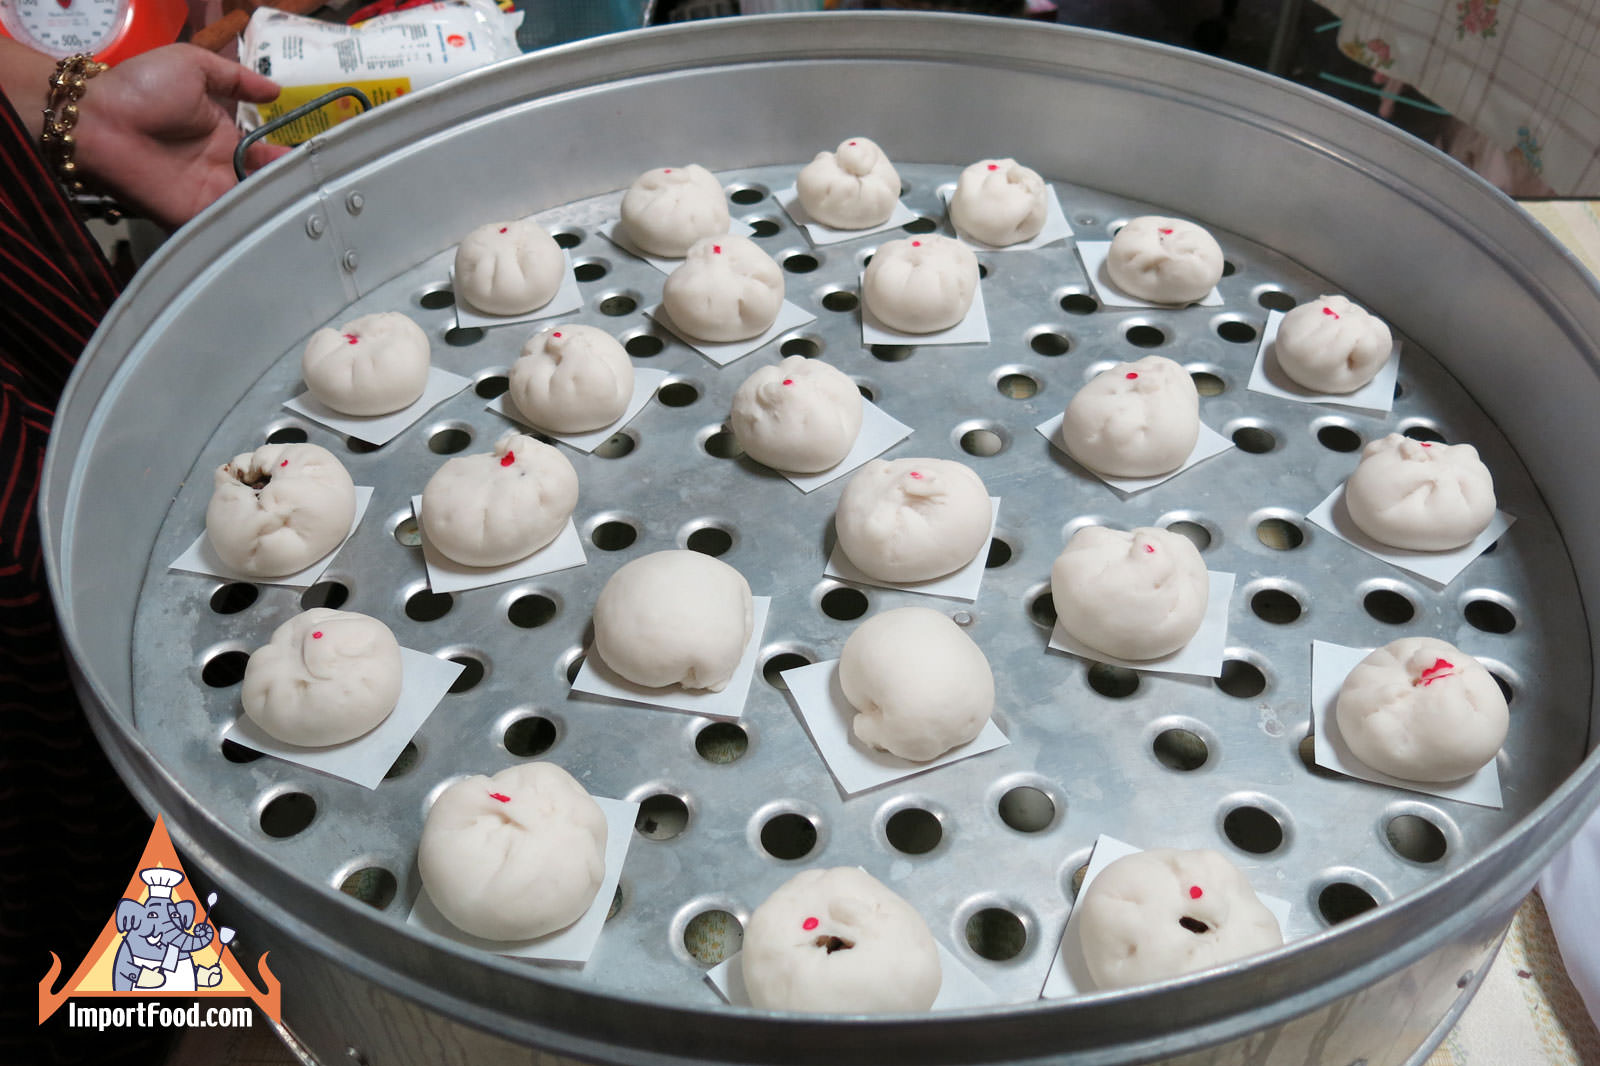 Street Vendor Makes Steamed Buns - Salapao